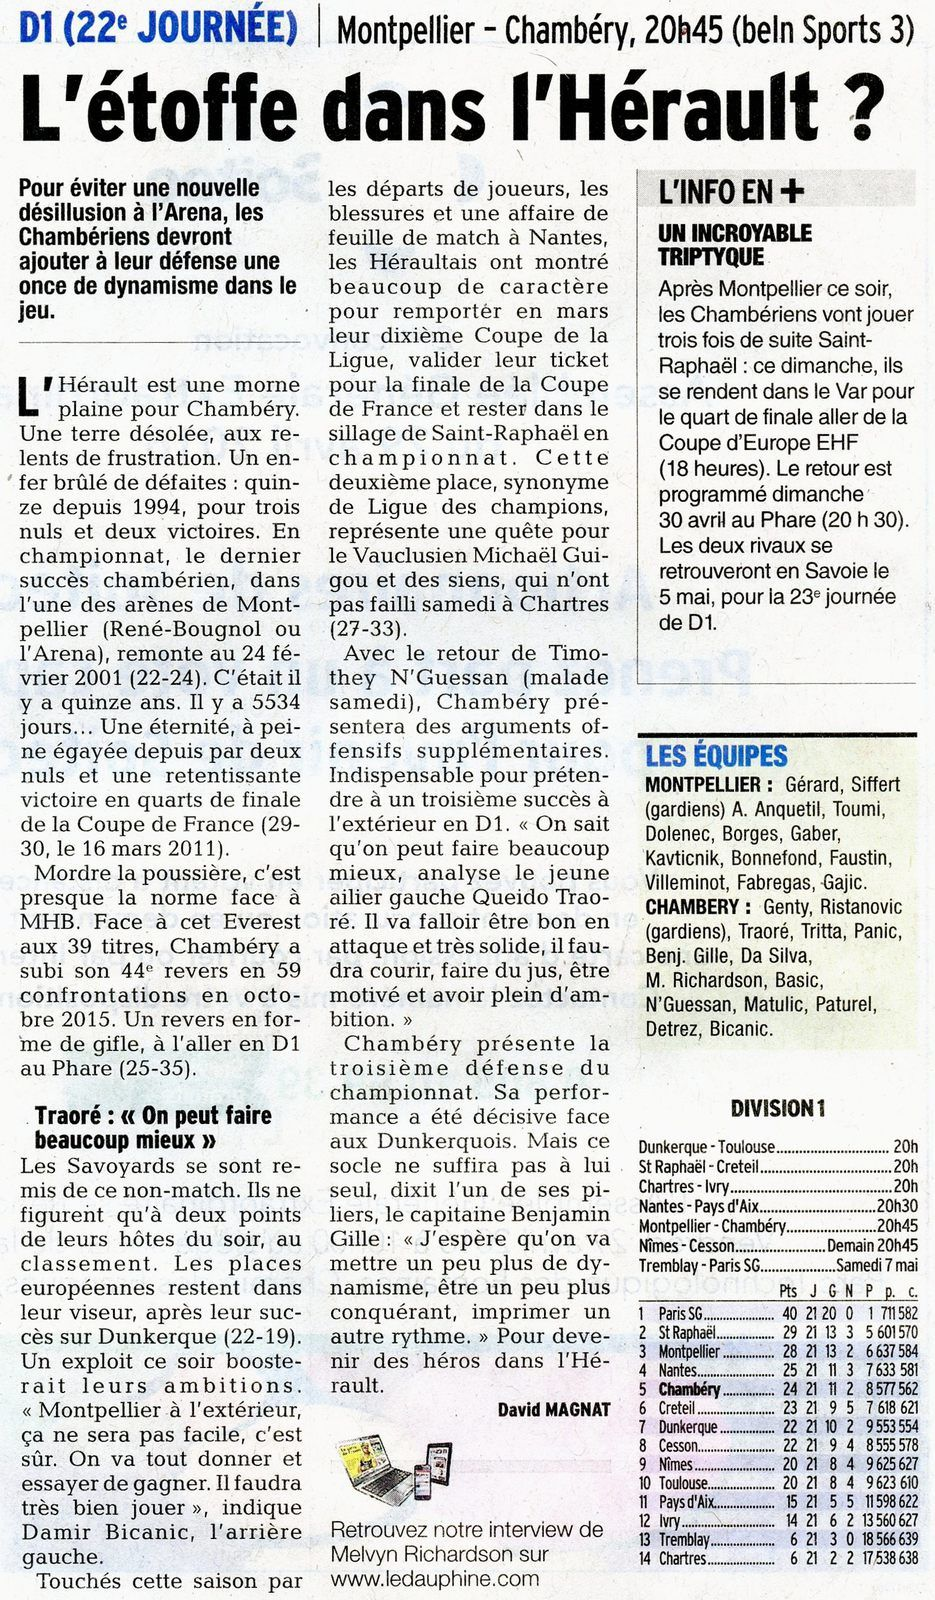 D1 l'article du DL MONTPELLIER  CHAMBERY 20 avril 2016